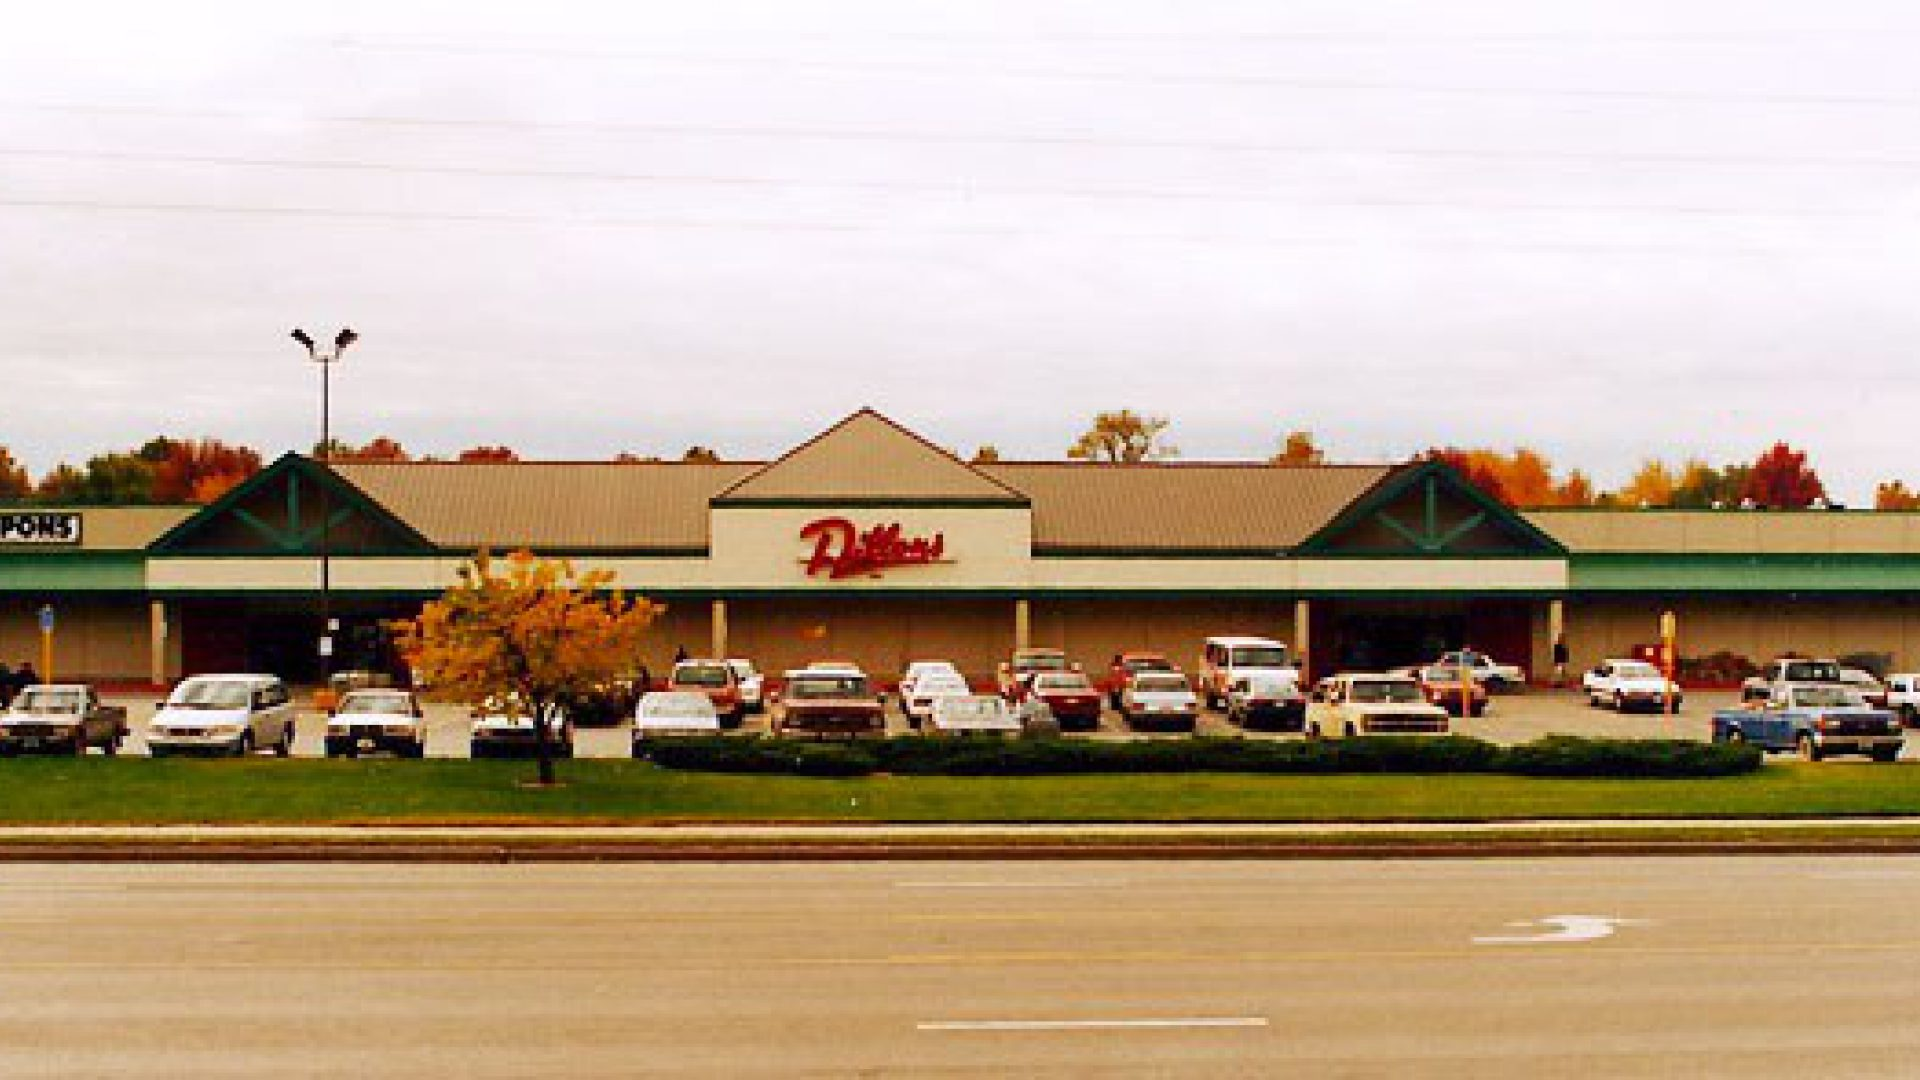 Property: Dillons Grocery